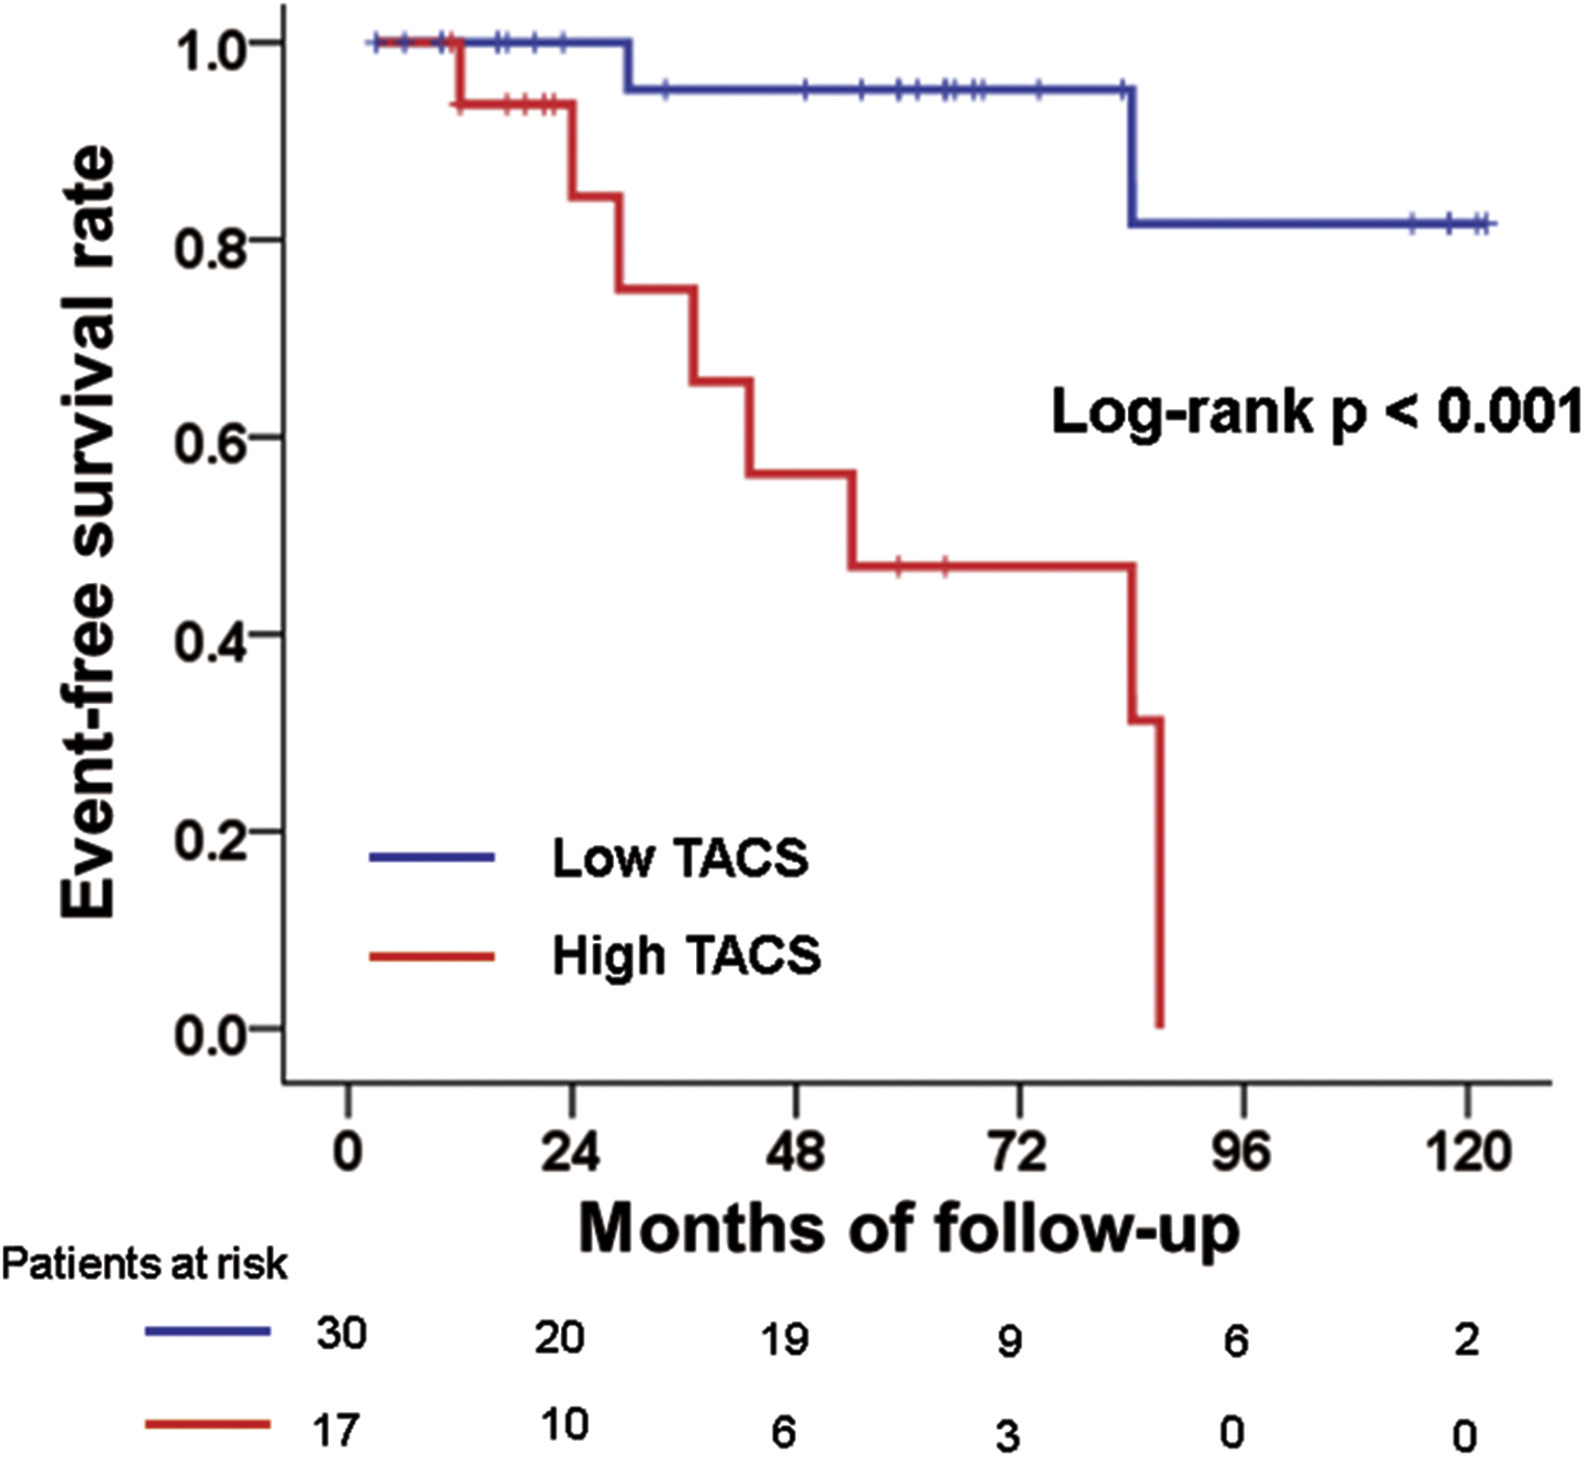 Association Of Thoracic Aorta Calcium Score With Left